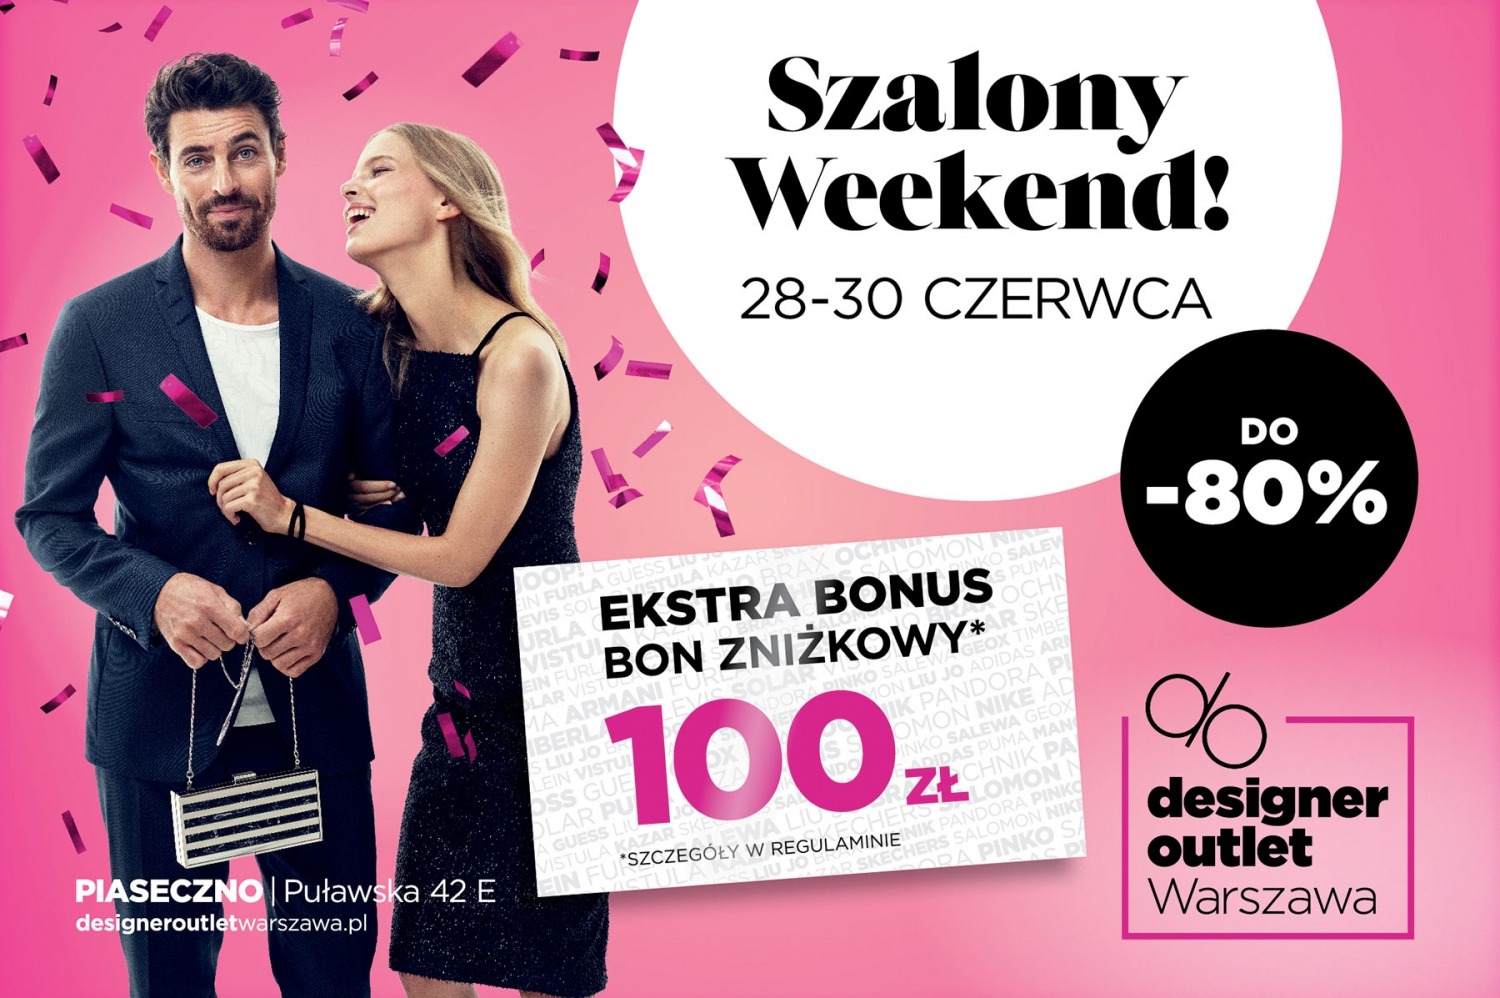 Crazy Weekend at Designer Outlet Warszawa